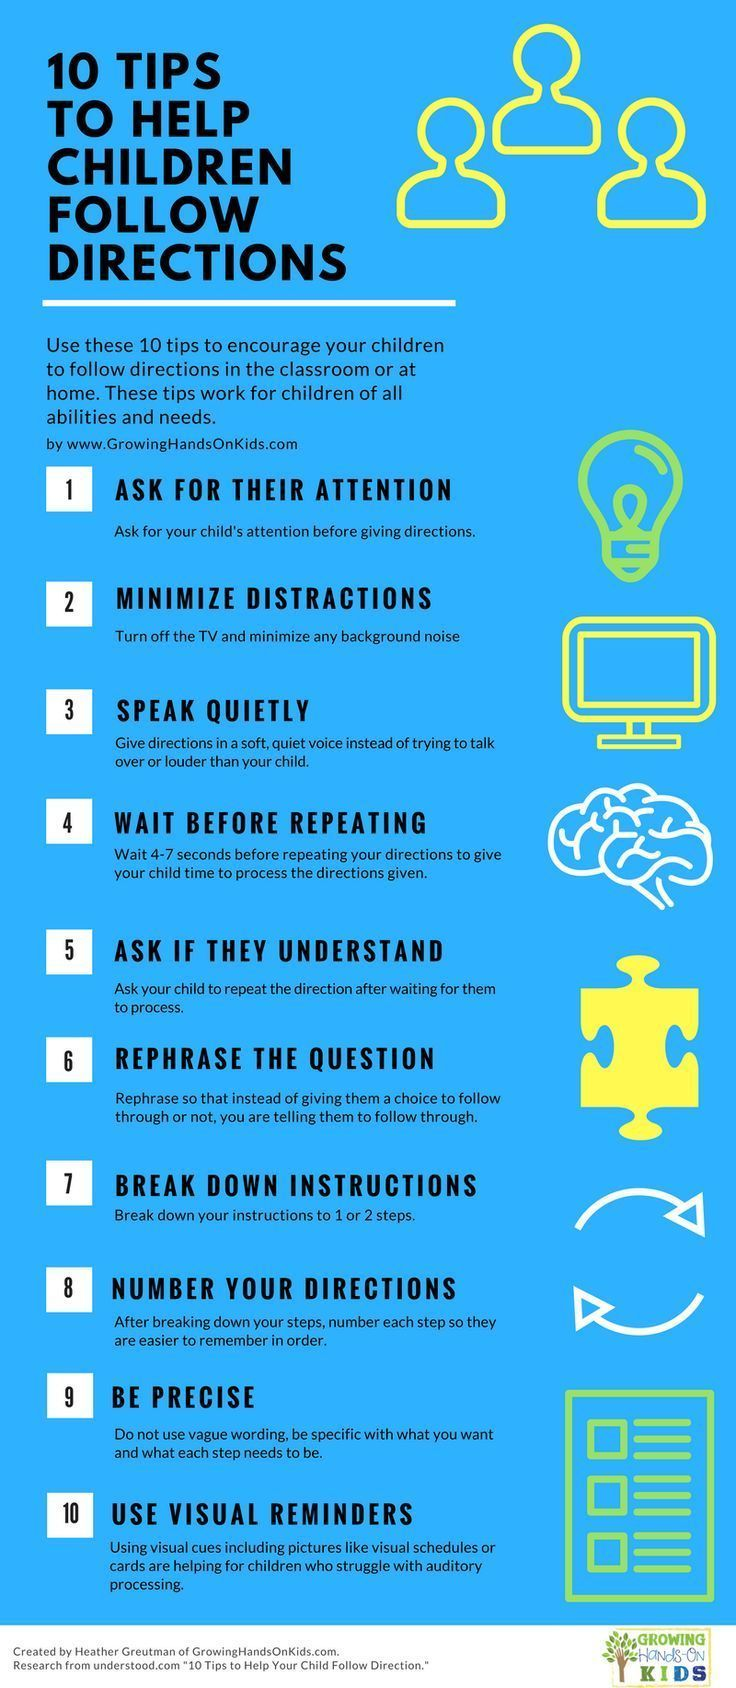 best ideas about following directions following 10 tips for teaching children how to follow directions in the classroom or home